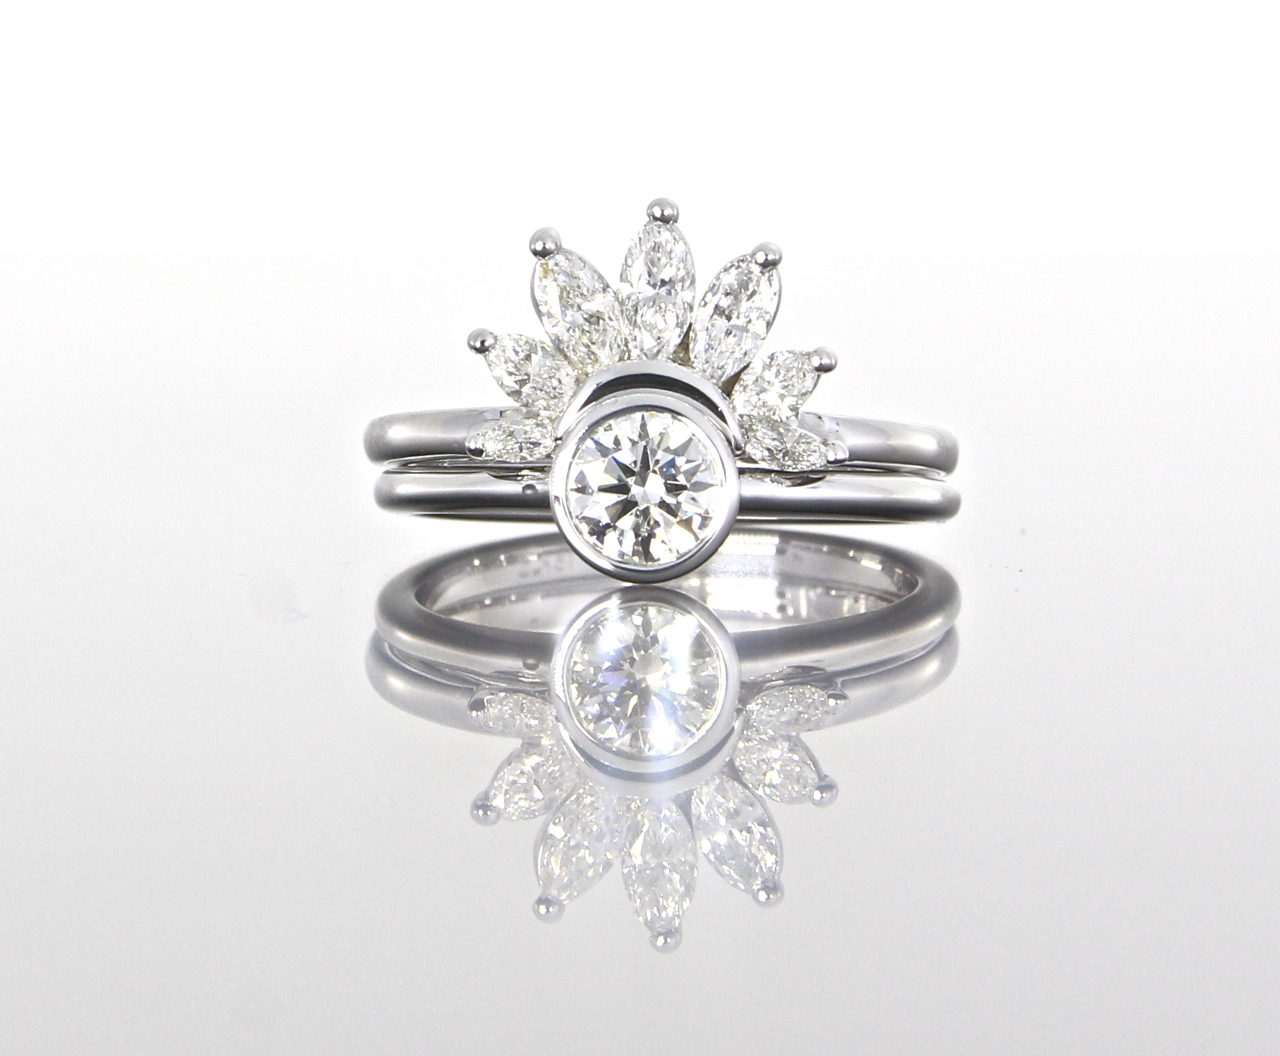 unique-round-diamond-delicate-marquise-diamond-halo-engagement-rings-craft-revival-jewelry-store-grand-rapids